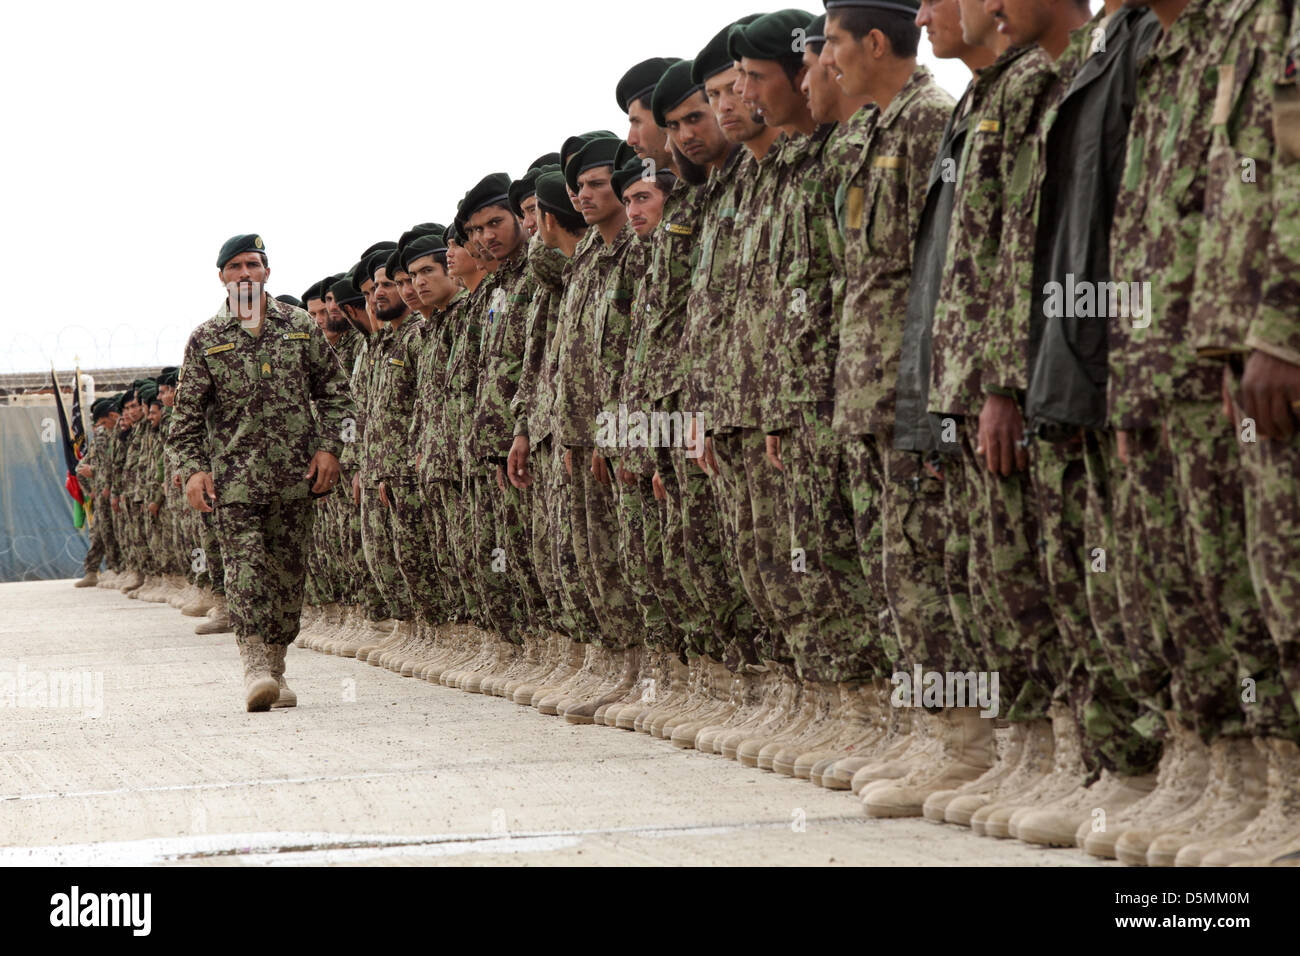 Afghan Nation Army soldiers during graduation from basic warrior course March 28, 2013 at Camp Shorabak, Helmand - Stock Image